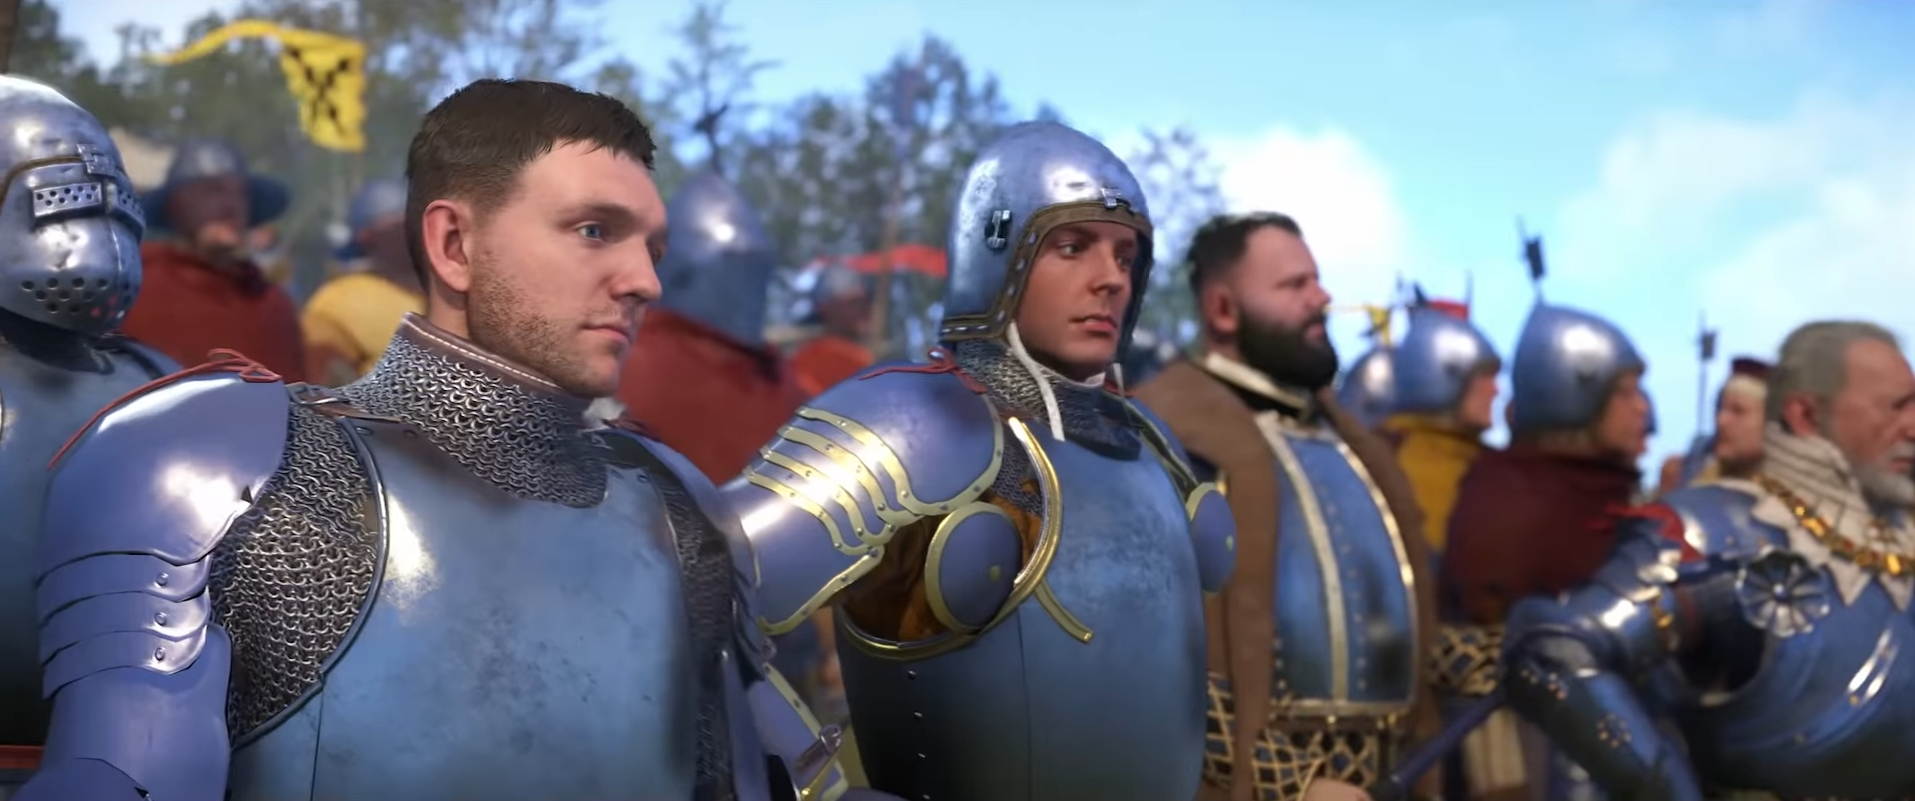 Kingdom Come Deliverance Releases Third Scripting Tutorial Video And Adds Spanish Audio Translation